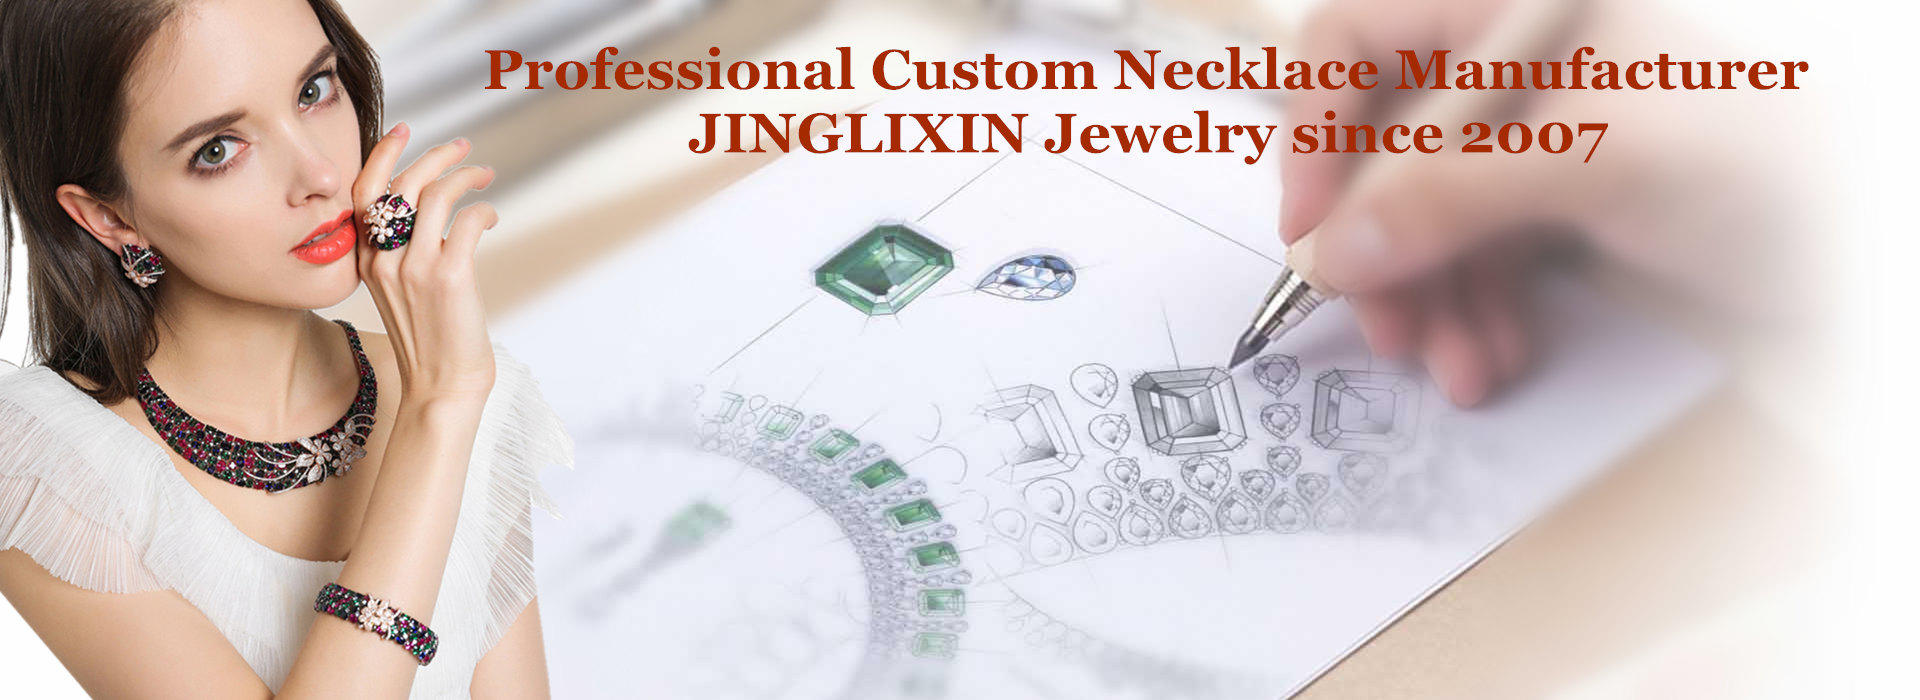 custom necklace manufacturer, custom gold necklace supplier, custom jewelry necklaces factory